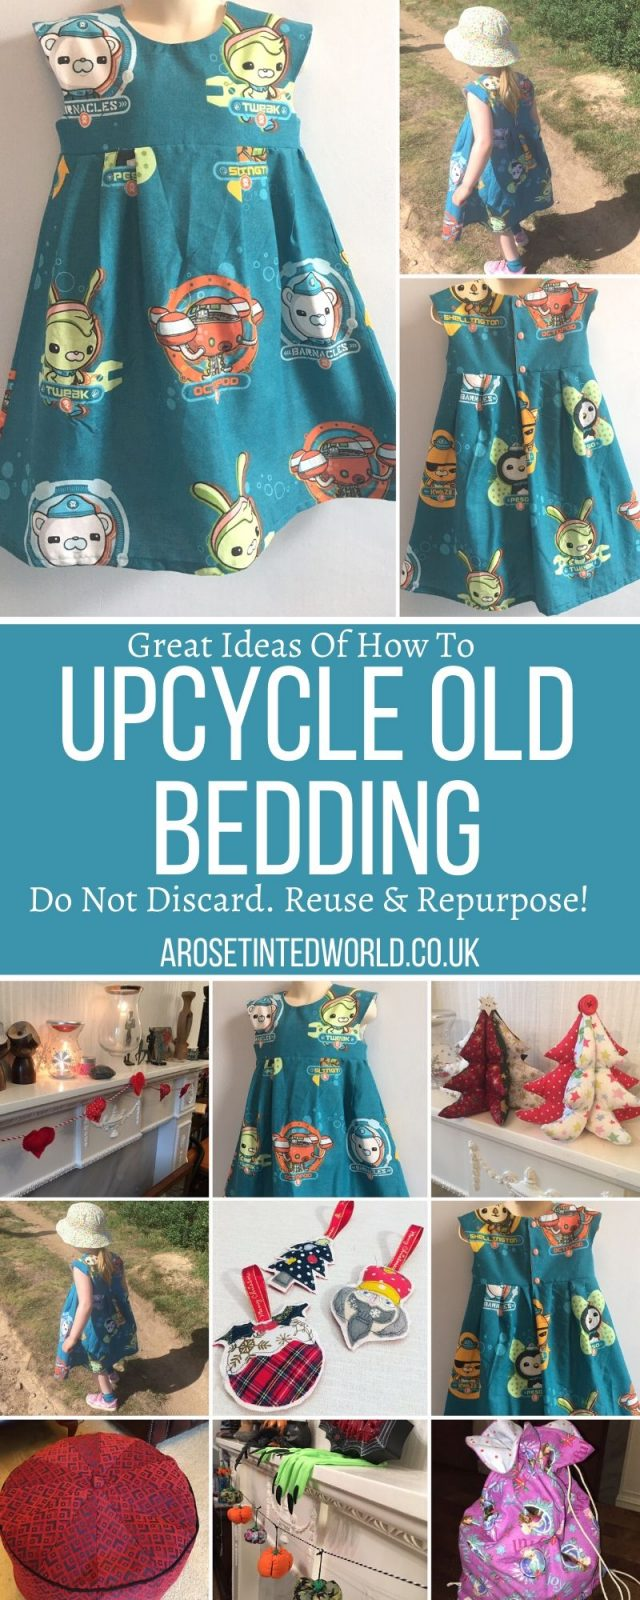 Upcycling Old Bedding - some great ideas & ways to recycle, repurpose or reuse old bed clothes, sheets & duvet covers. Be sustainable & make something new!